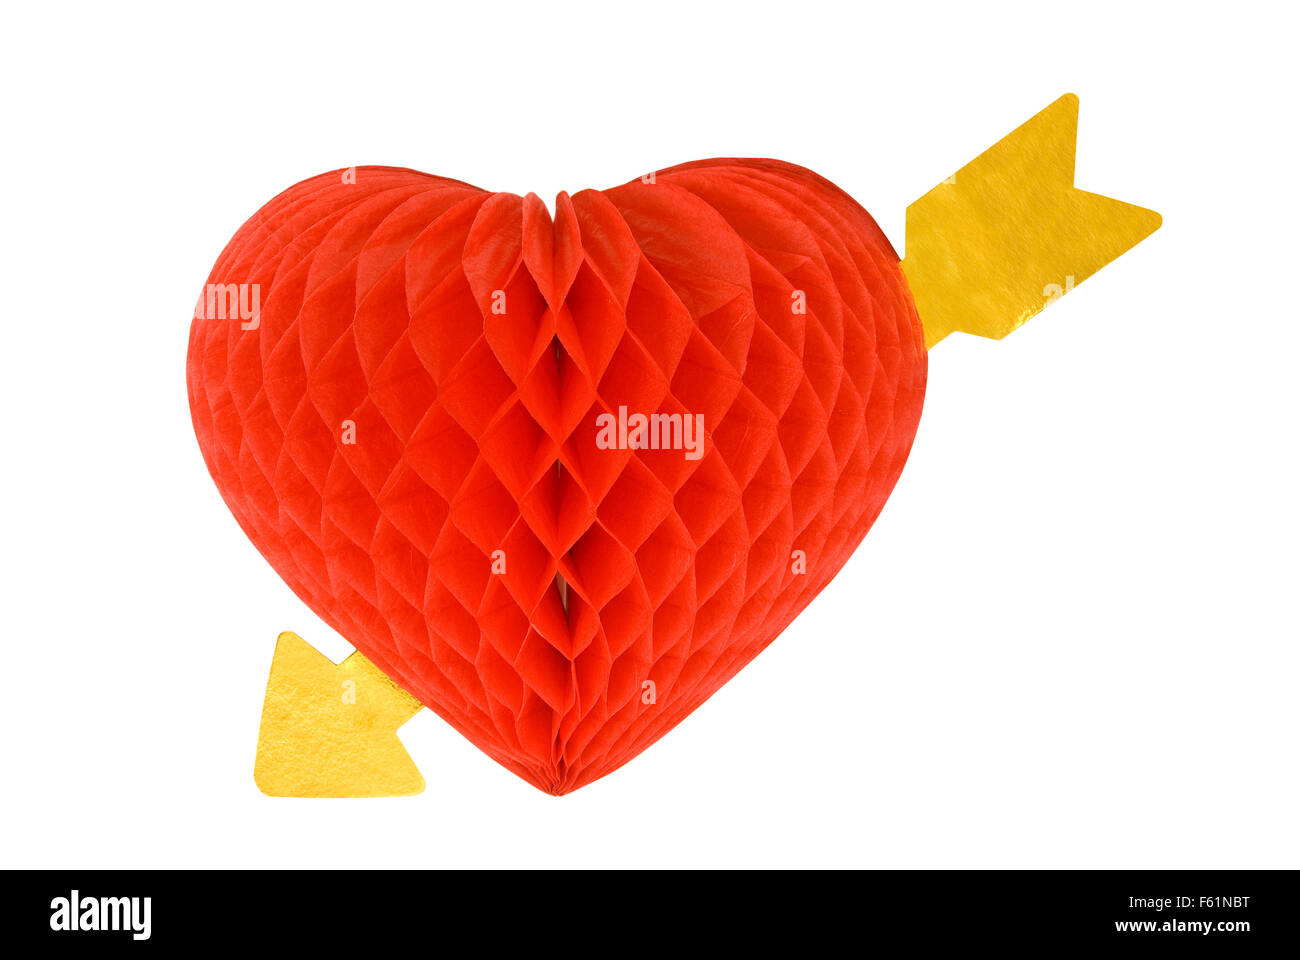 Red Valentine Heart Decoration With Gold Arrow Through It - Stock Image